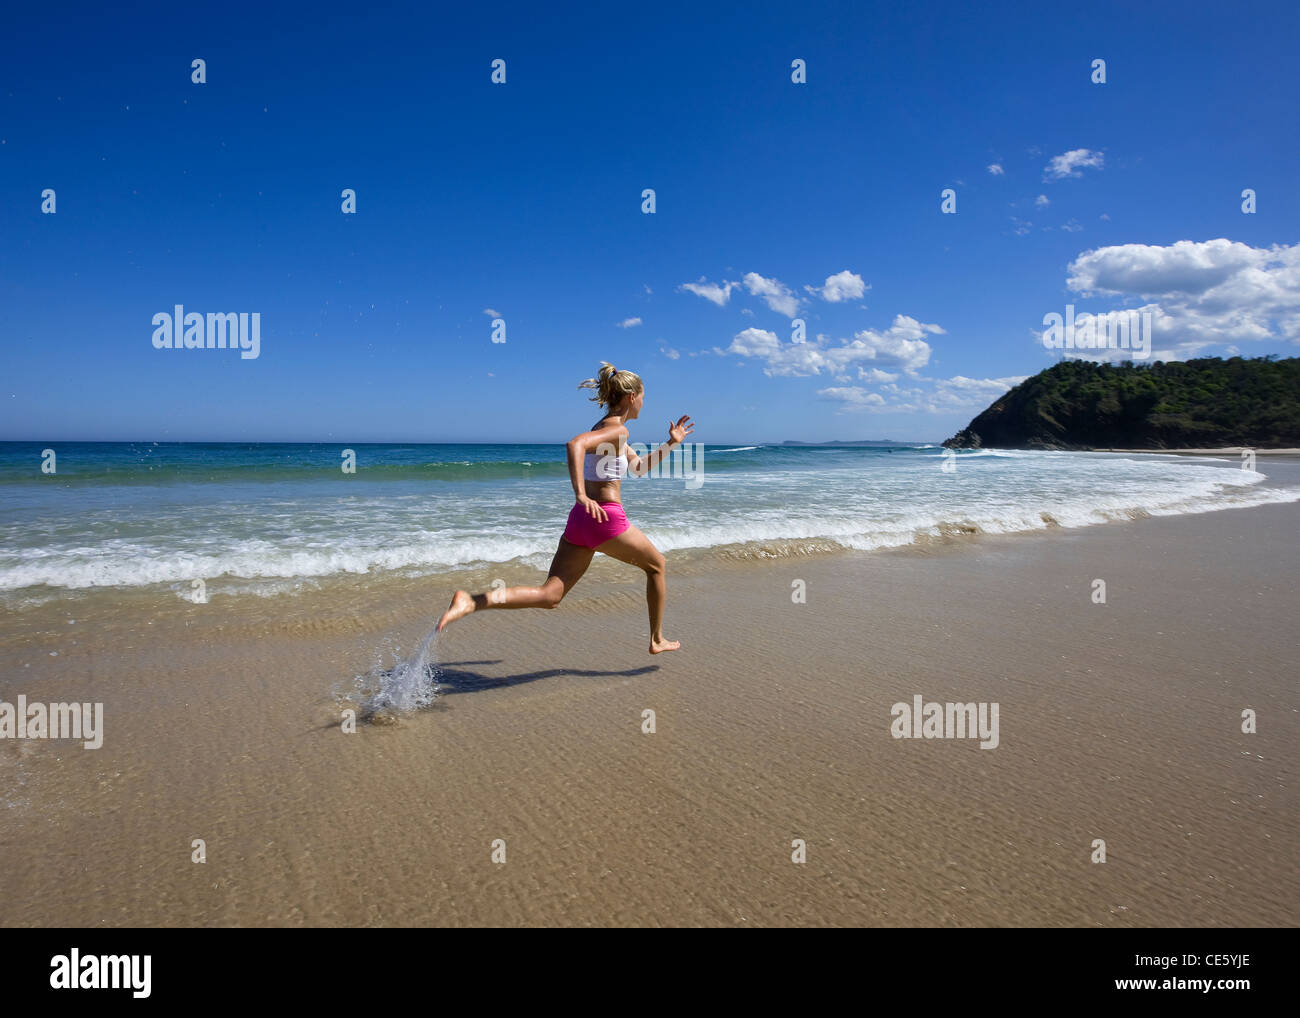 Girl doing a training session on the beach - Stock Image